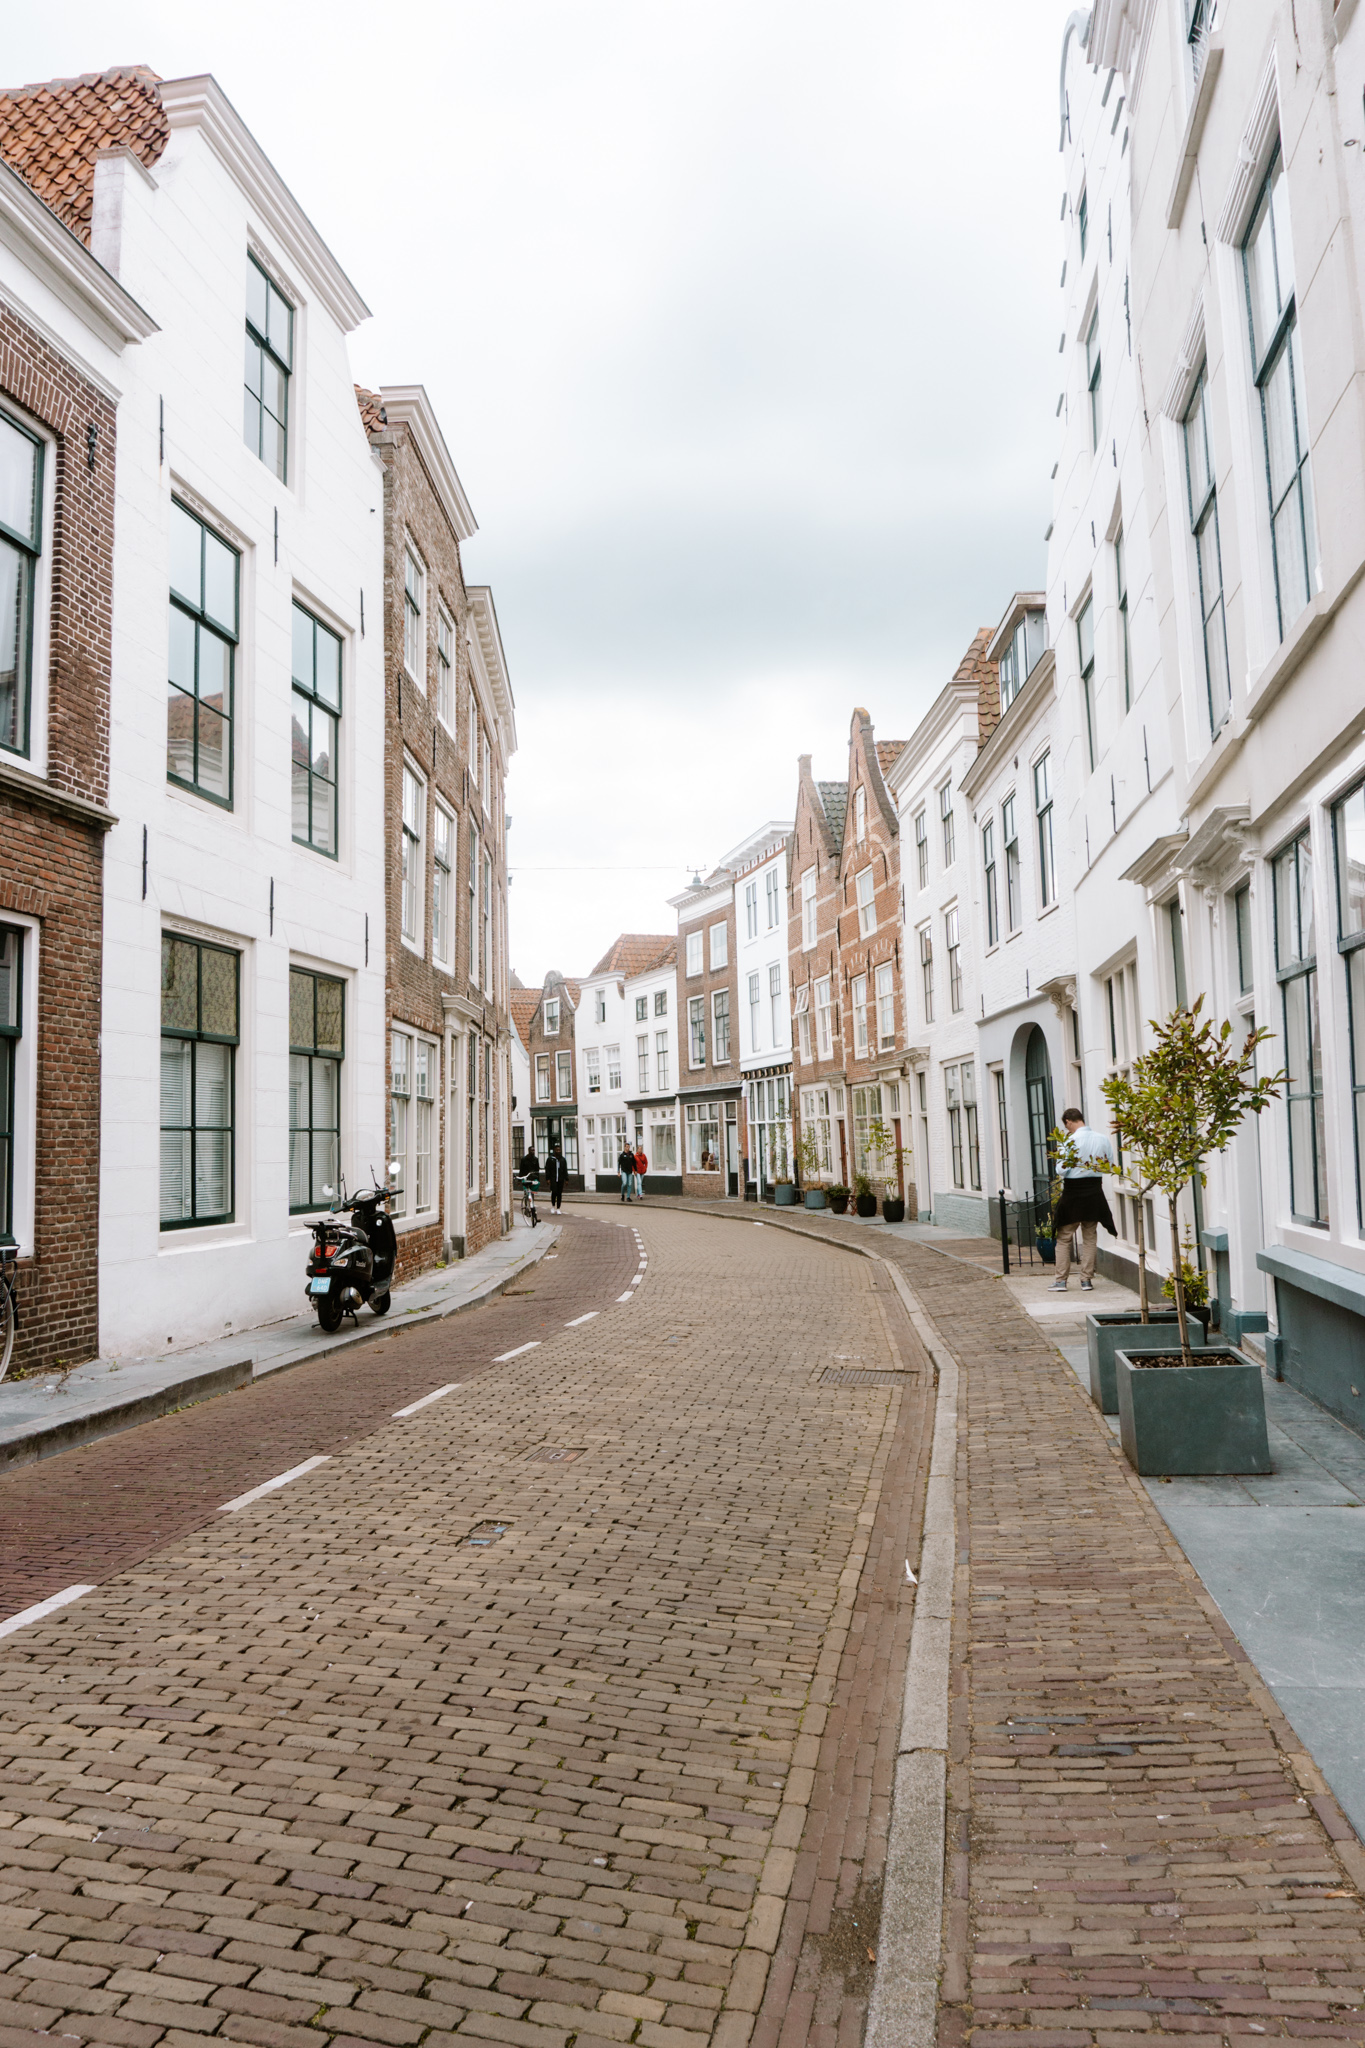 a street in middelburg with cute houses in black and brown